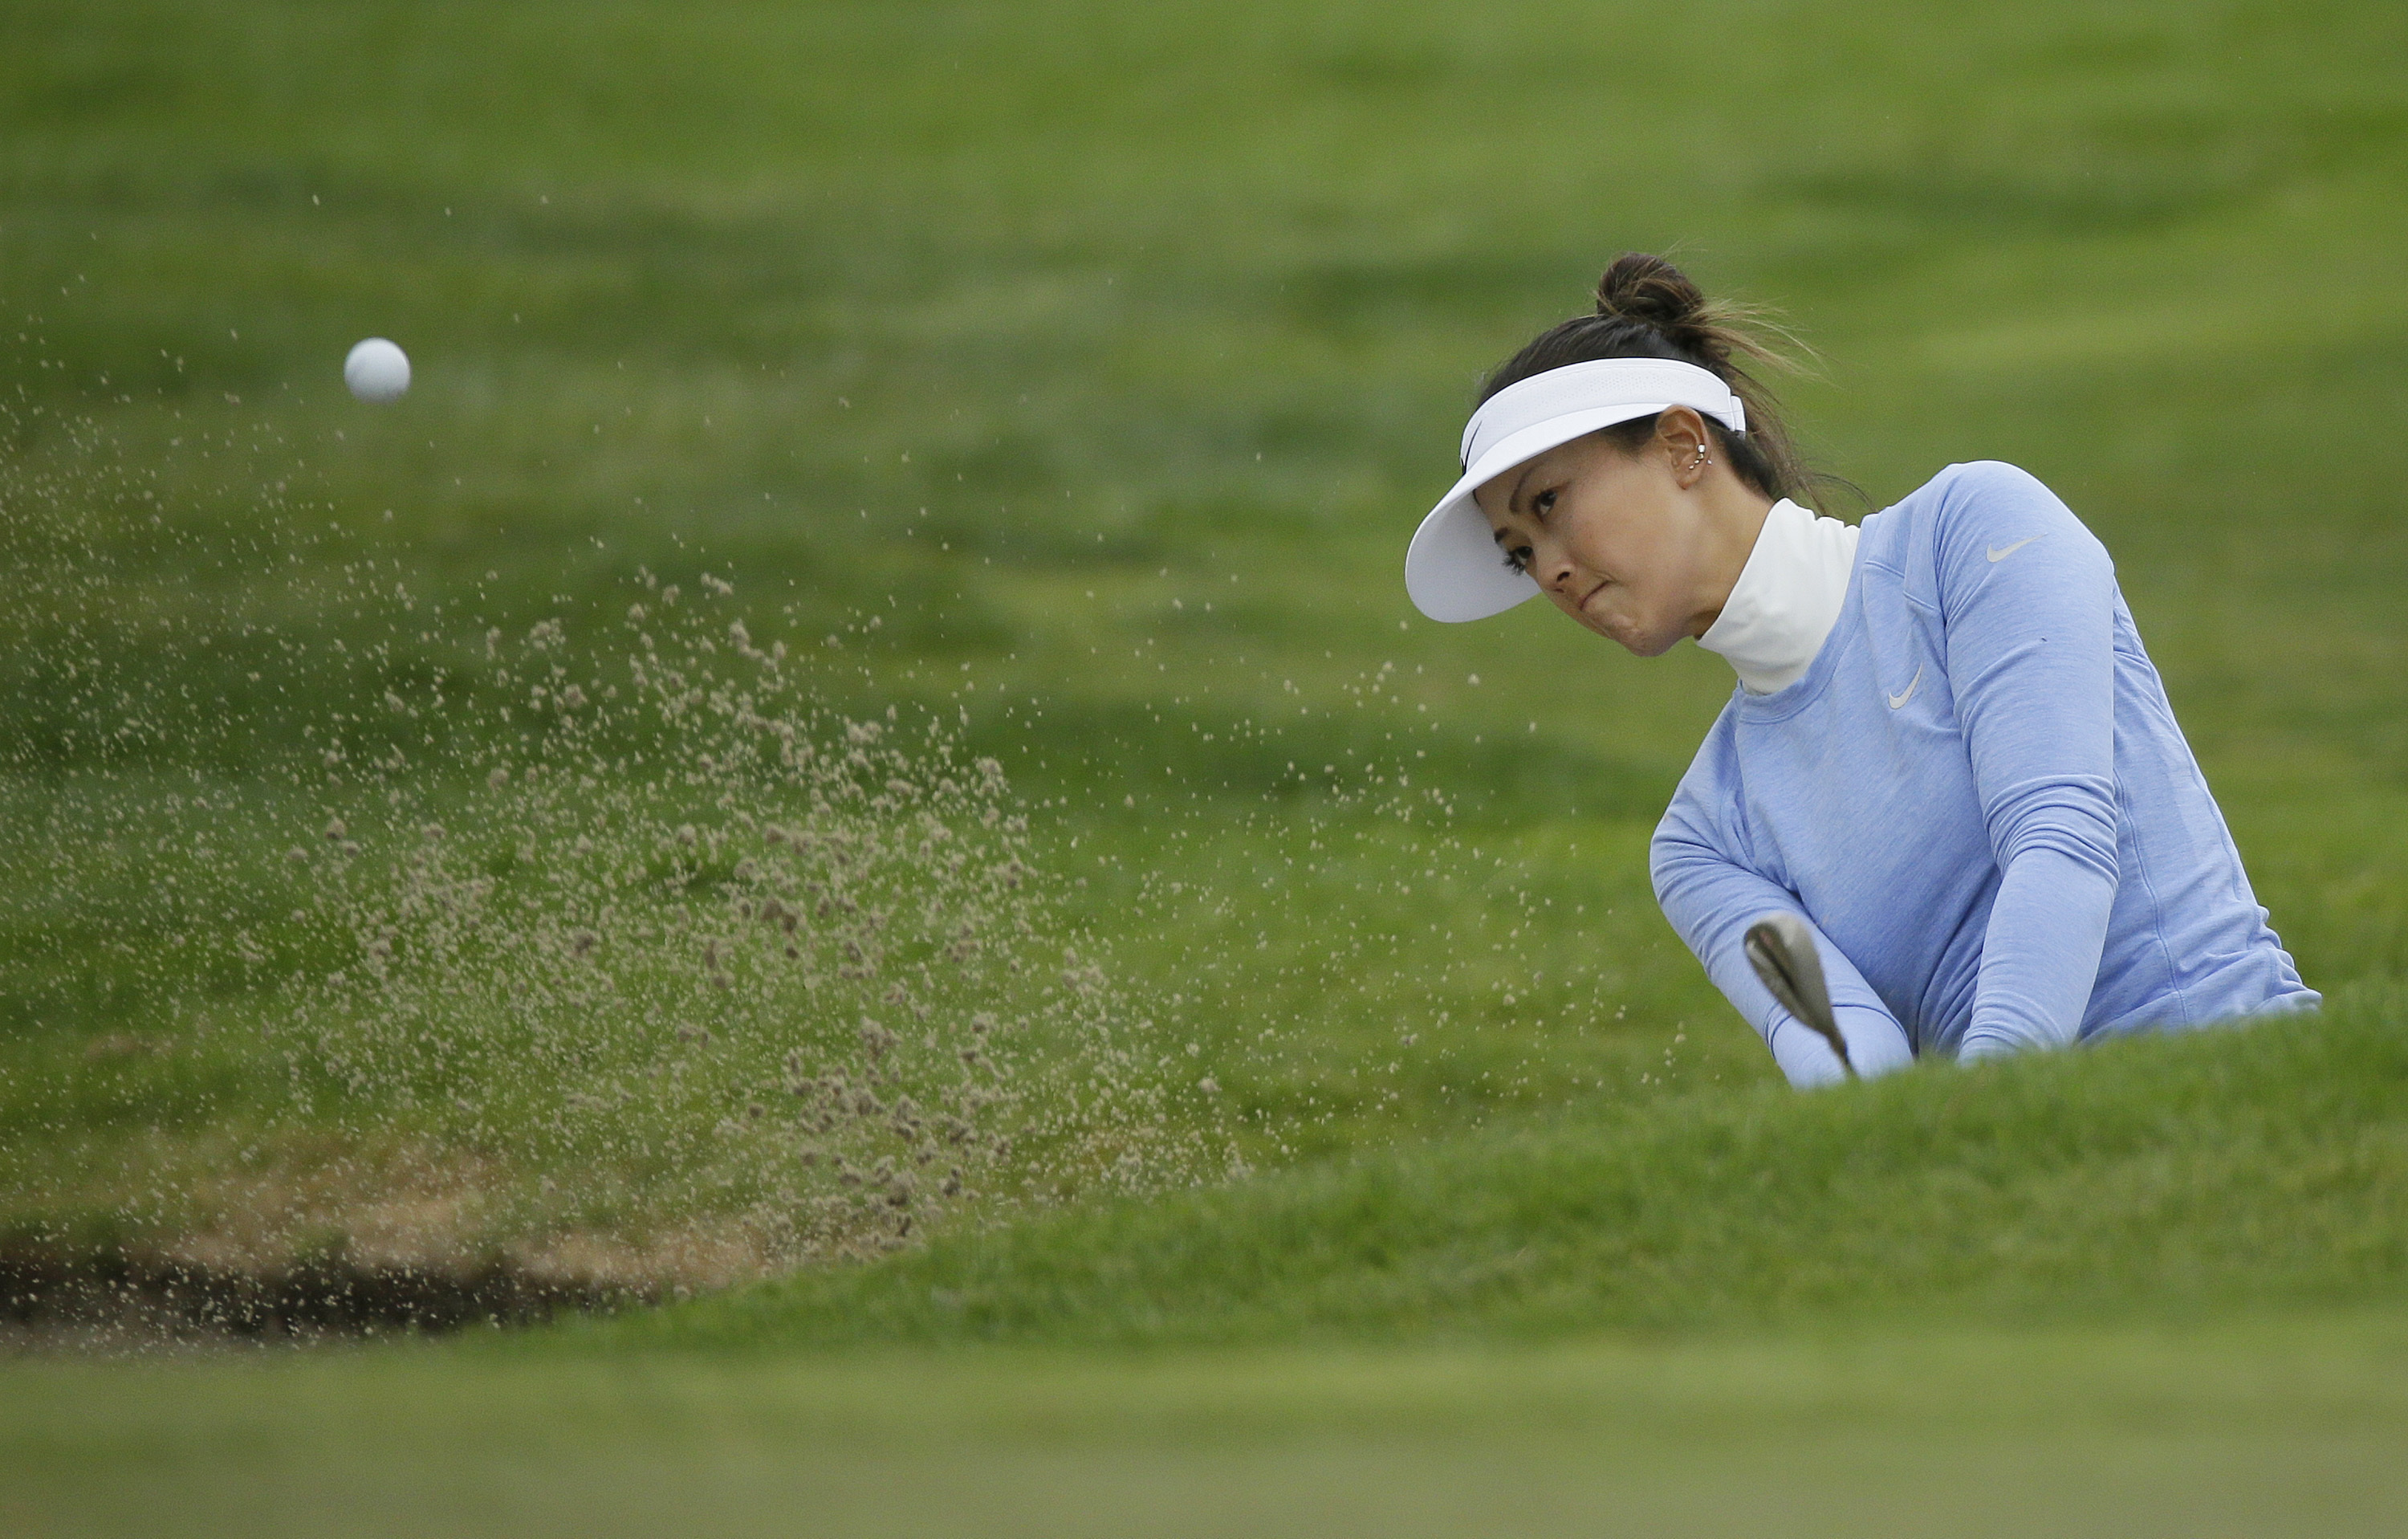 Michelle Wie hits out of a bunker up to the sixth green of the Lake Merced Golf Club during the second round of the Swinging Skirts LPGA Classic golf tournament Friday, April 22, 2016, in Daly City, Calif. (AP Photo/Eric Risberg)